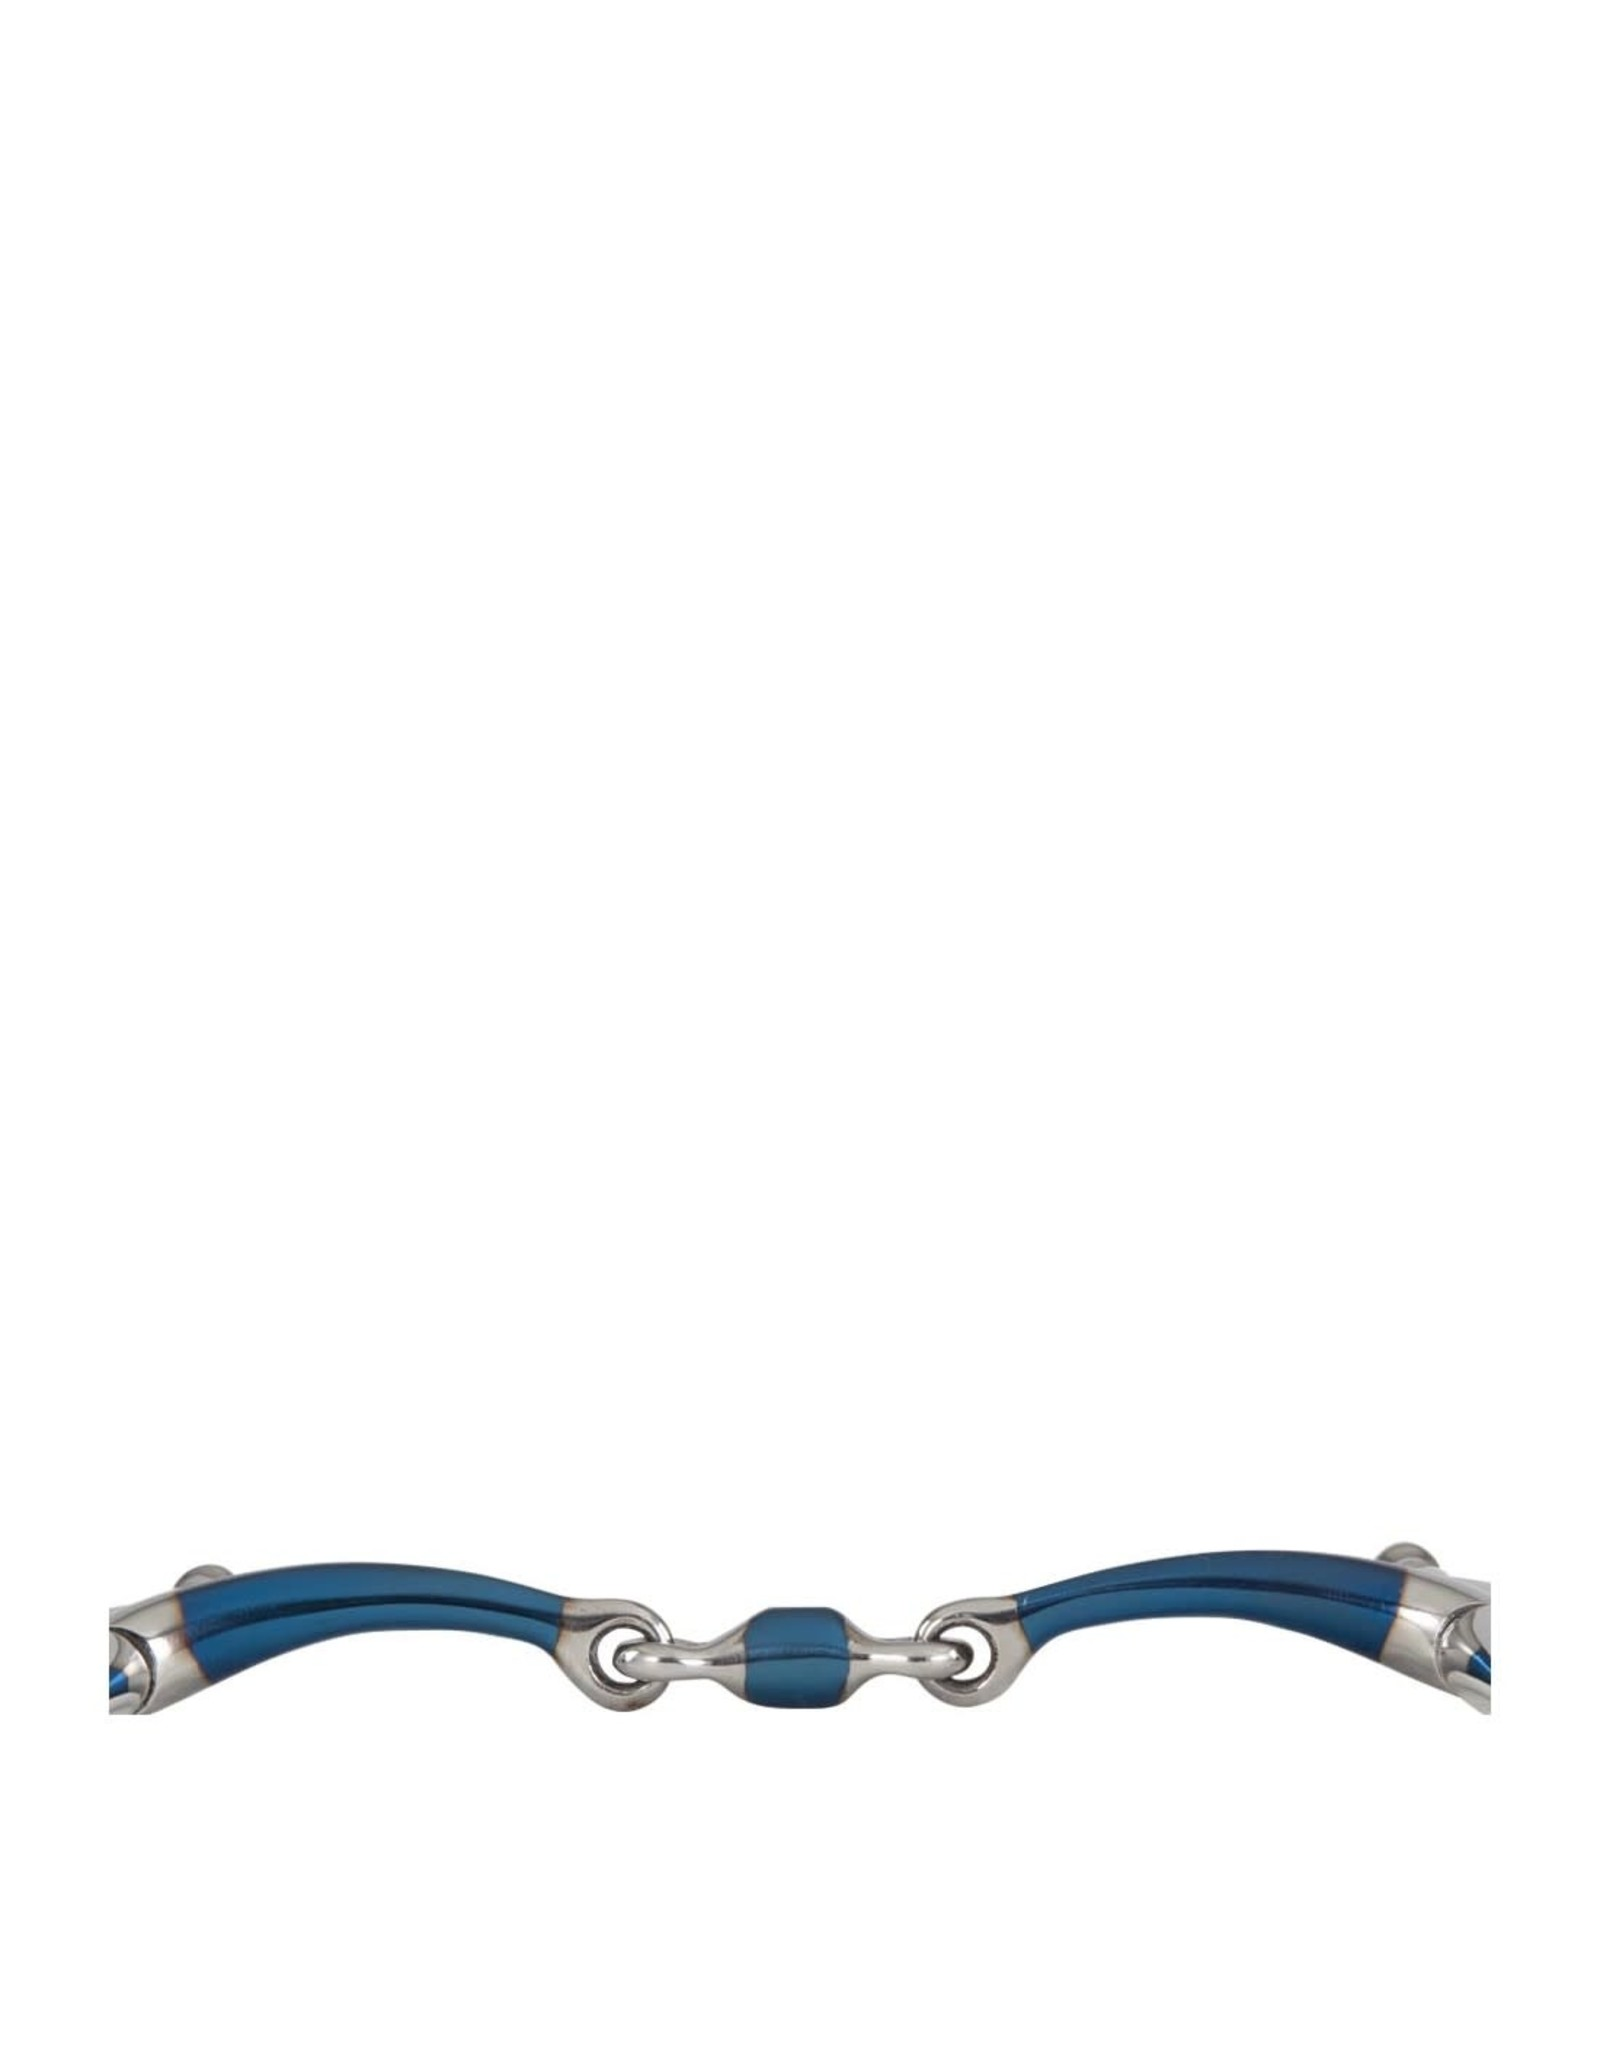 BR FULL CHEEK SWEET IRON DOUBLE JOINTED BIT 14MM